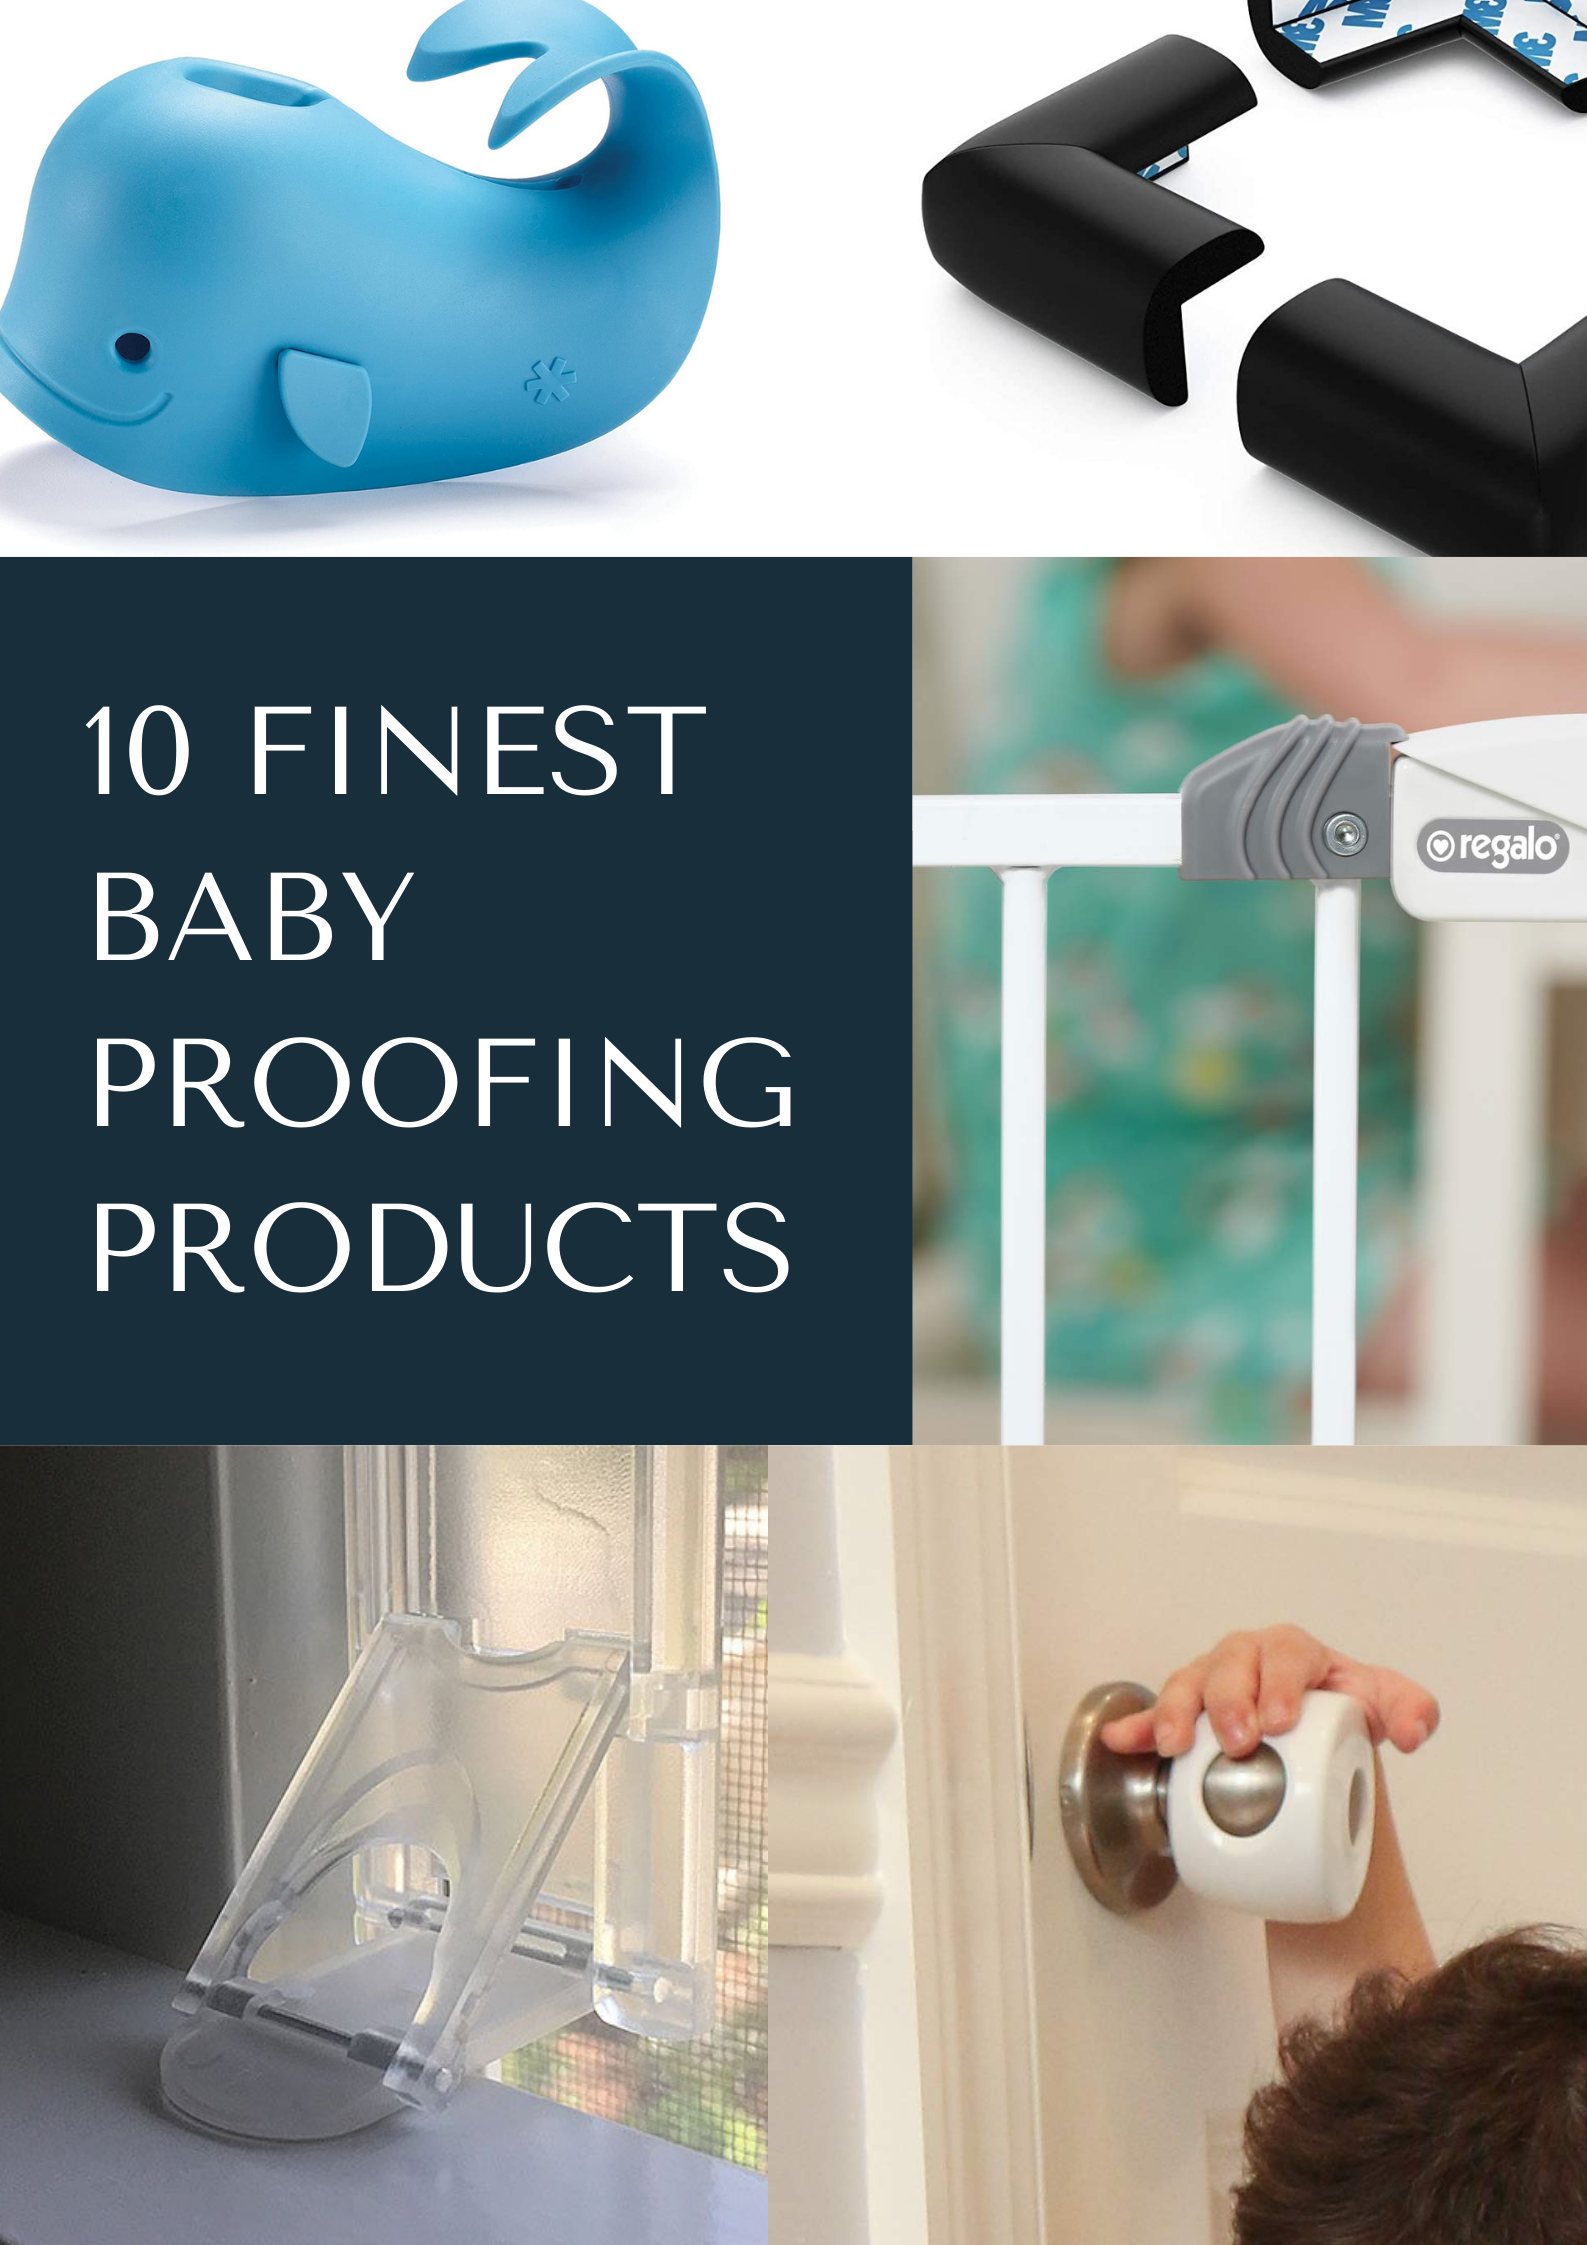 10 Finest Baby Proofing Products